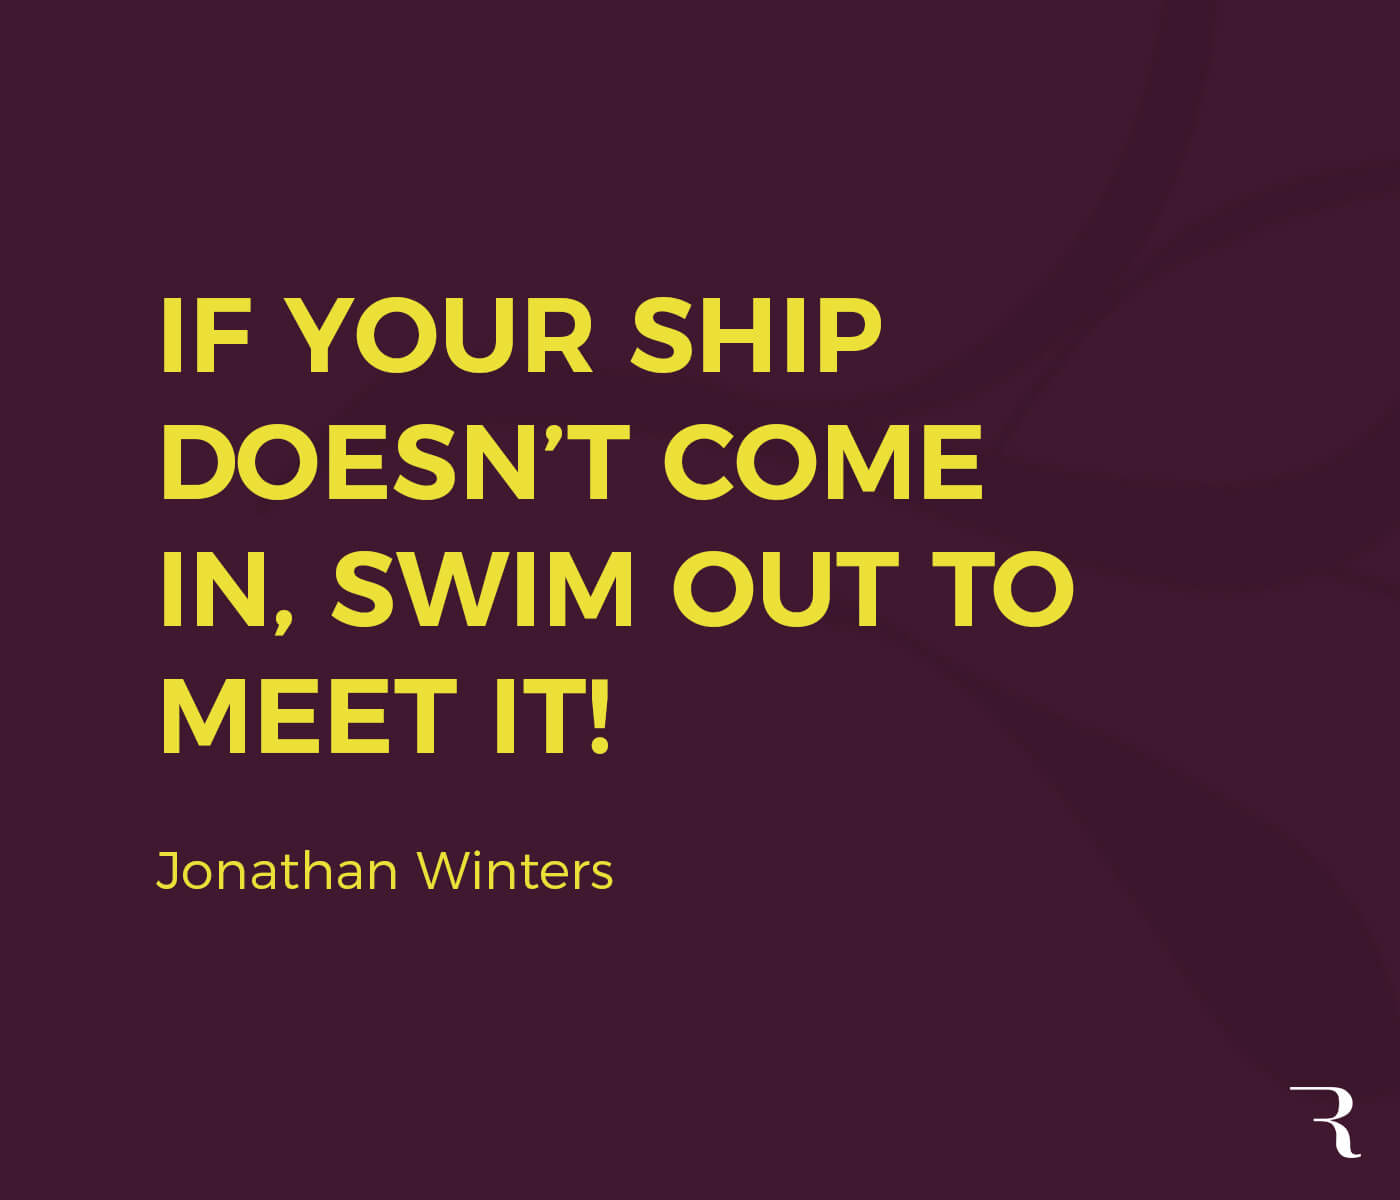 """Motivational Quotes: """"If your ship doesn't come in, swim out to meet it!"""" 112 Motivational Quotes to Be a Better Entrepreneur"""